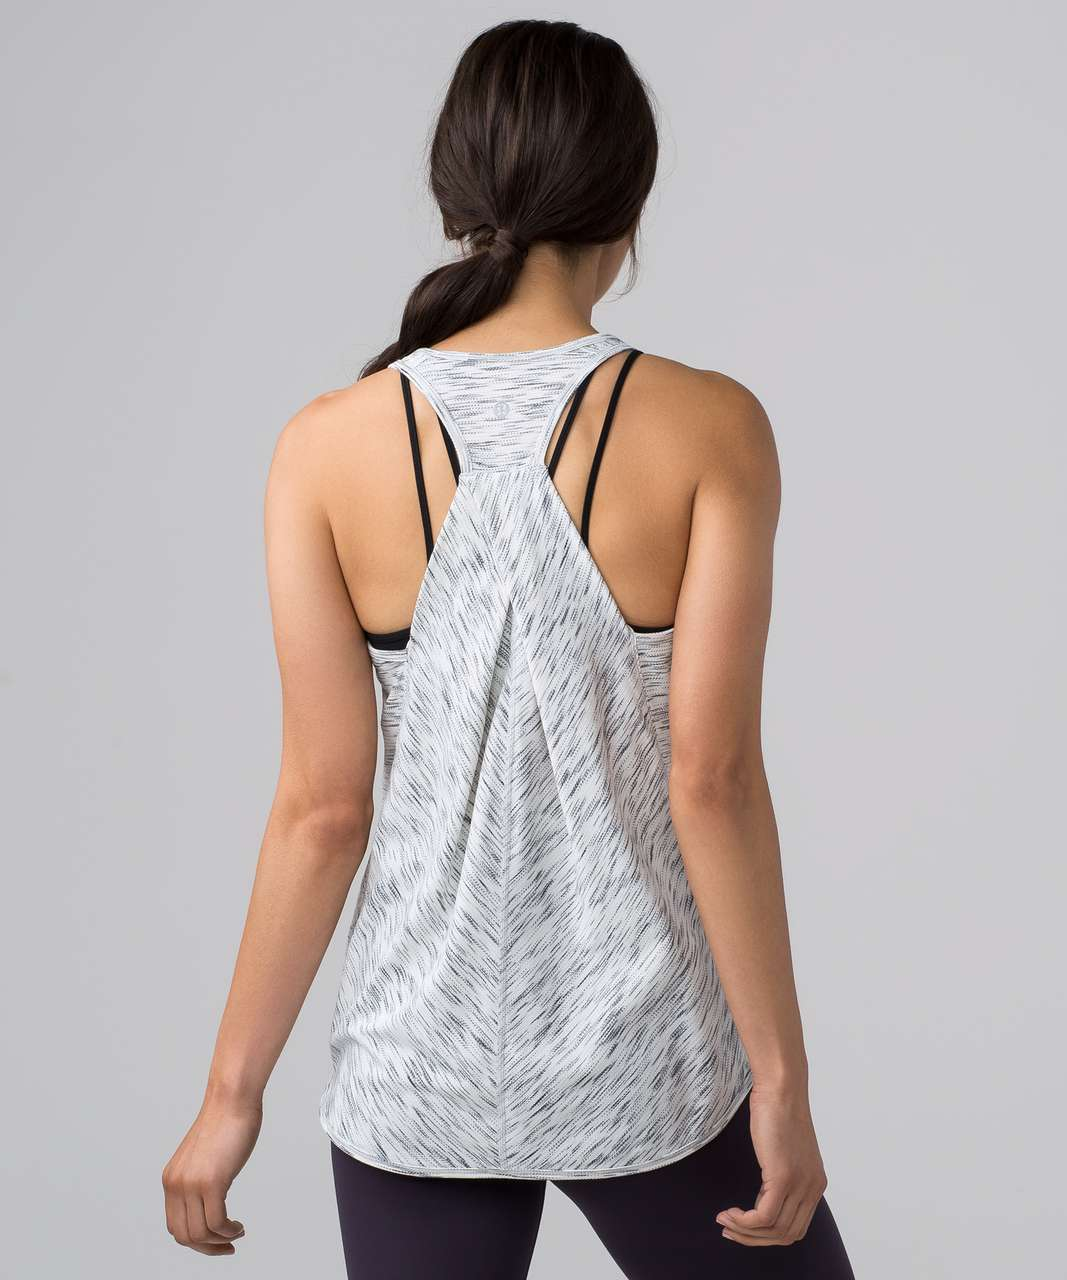 Lululemon Essential Tank - Tiger Space Dye Black White (First Release)